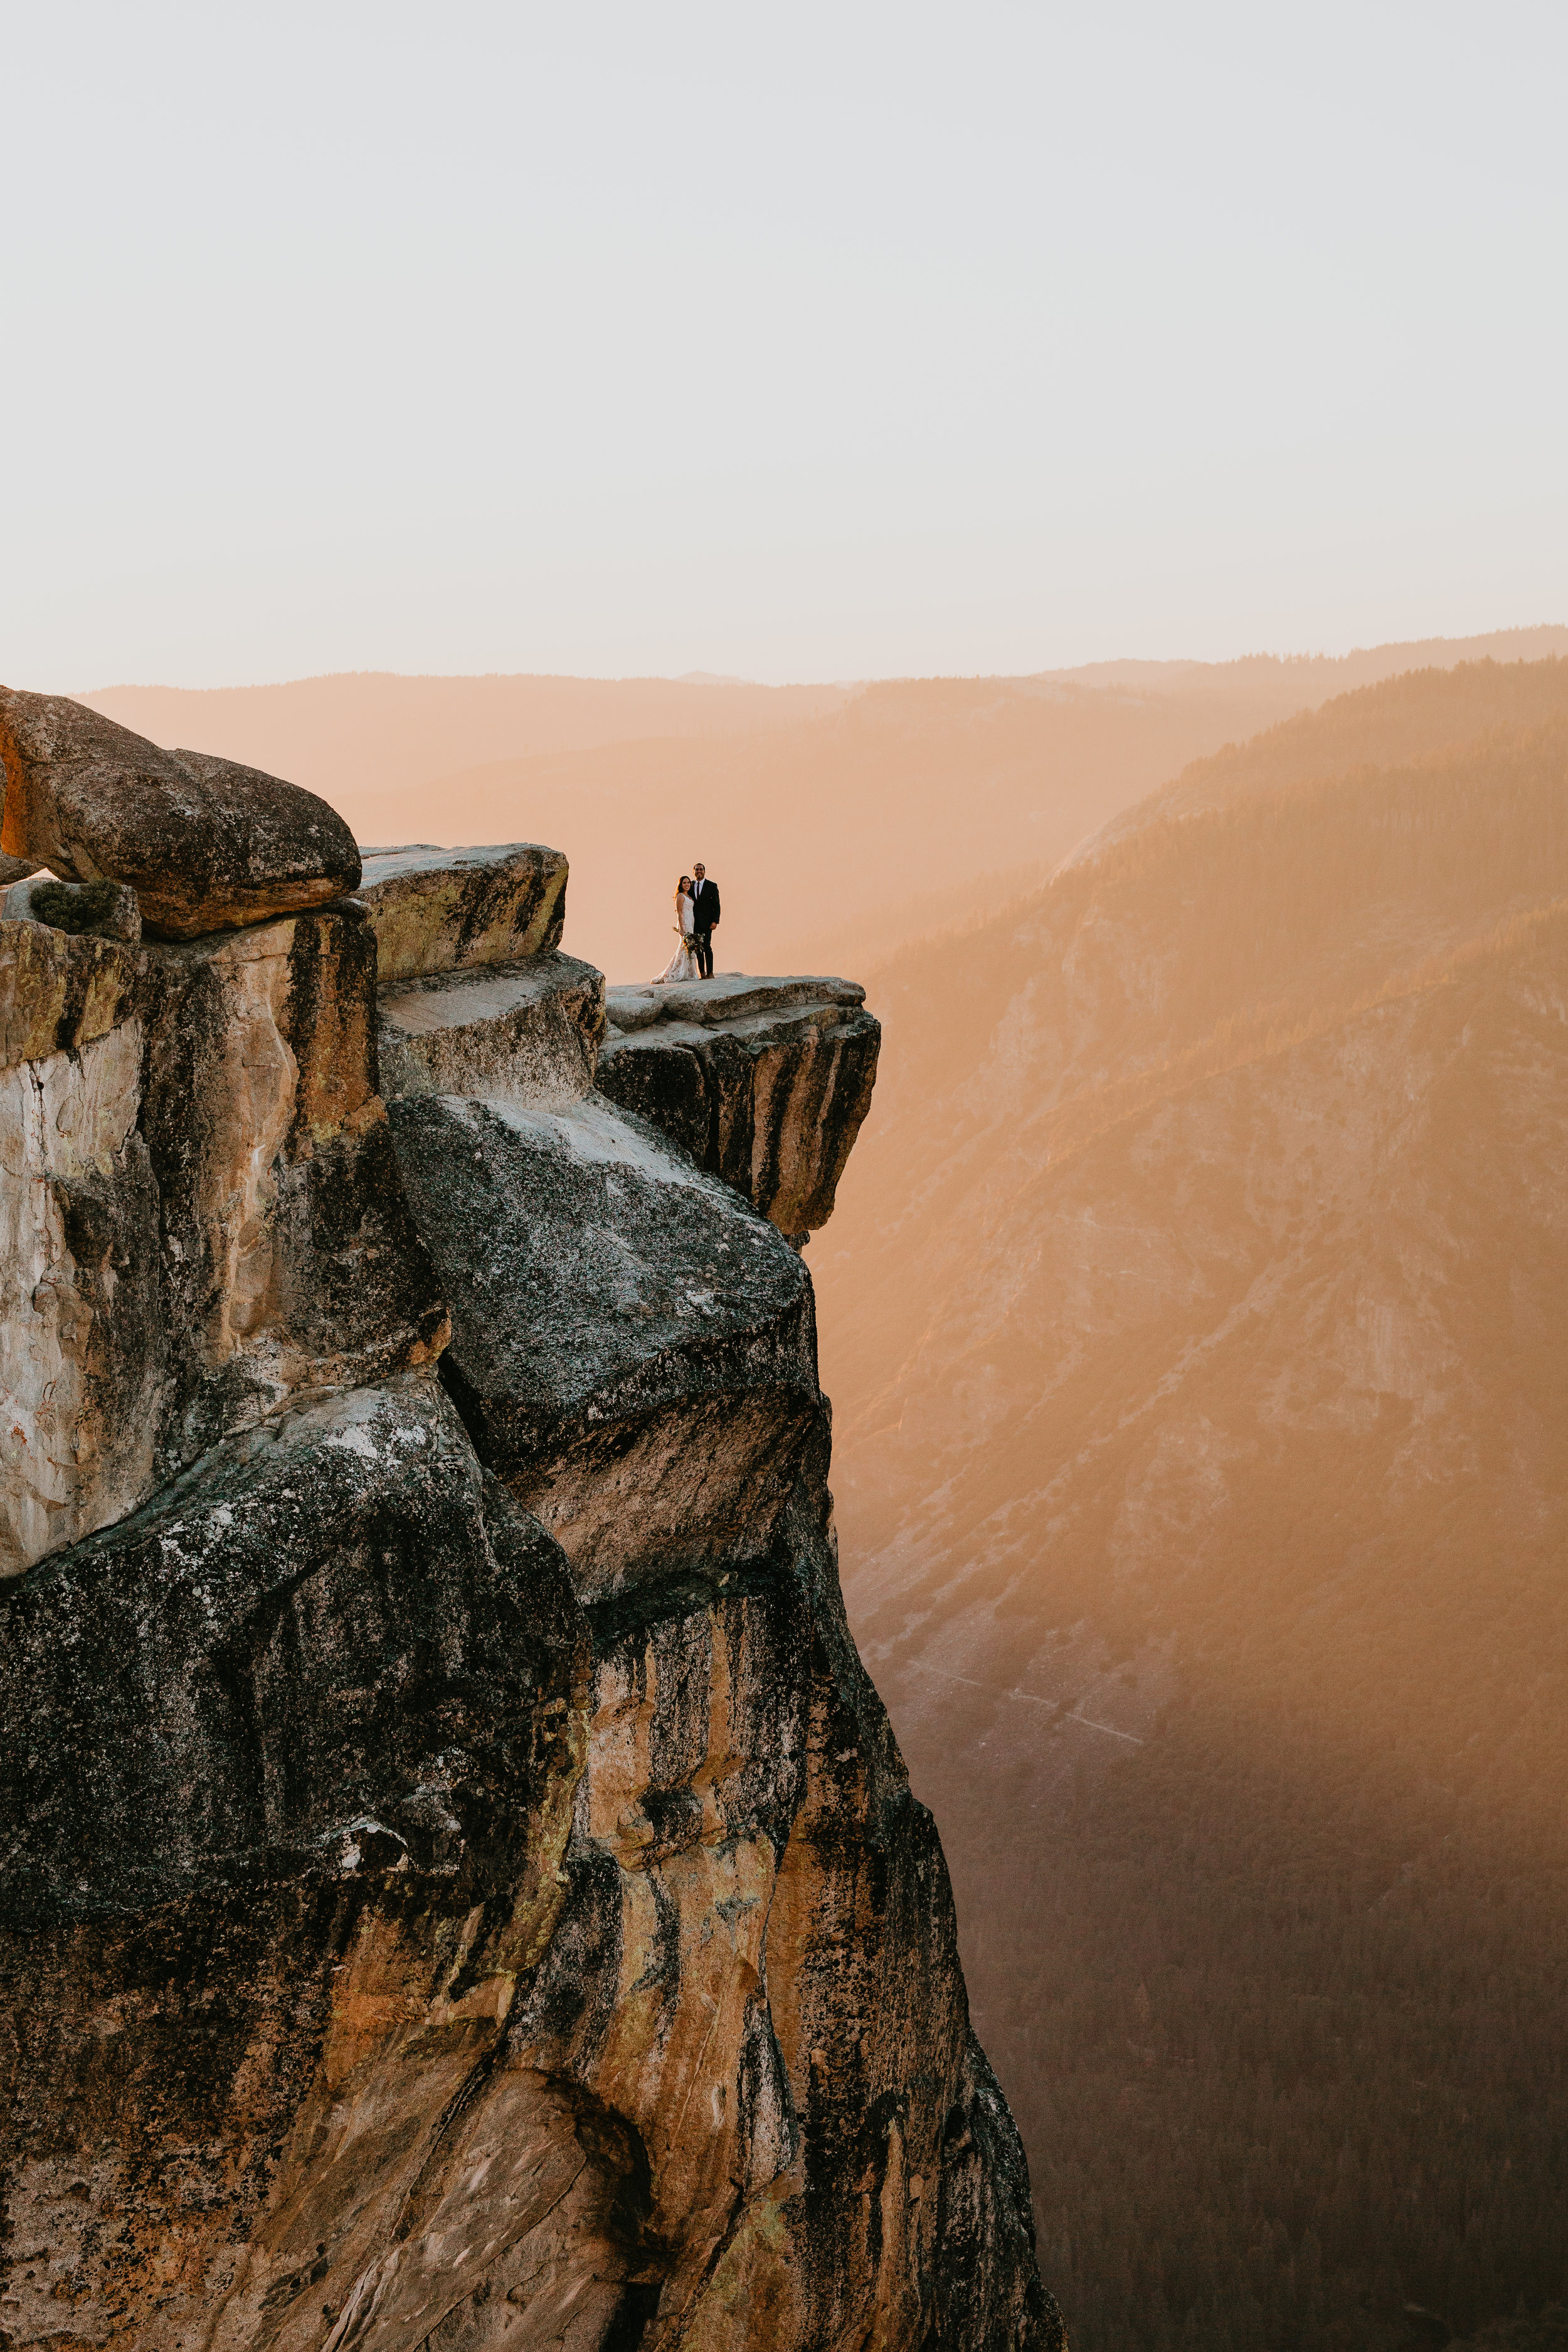 nicole-daacke-photography-intimate-elopement-wedding-yosemite-national-park-california-taft-point-sunset-photos-yosemite-valley-tunnel-view-first-look-sunrise-golden-granite-hiking-adventure-wedding-adventurous-elopement-photographer-110.jpg